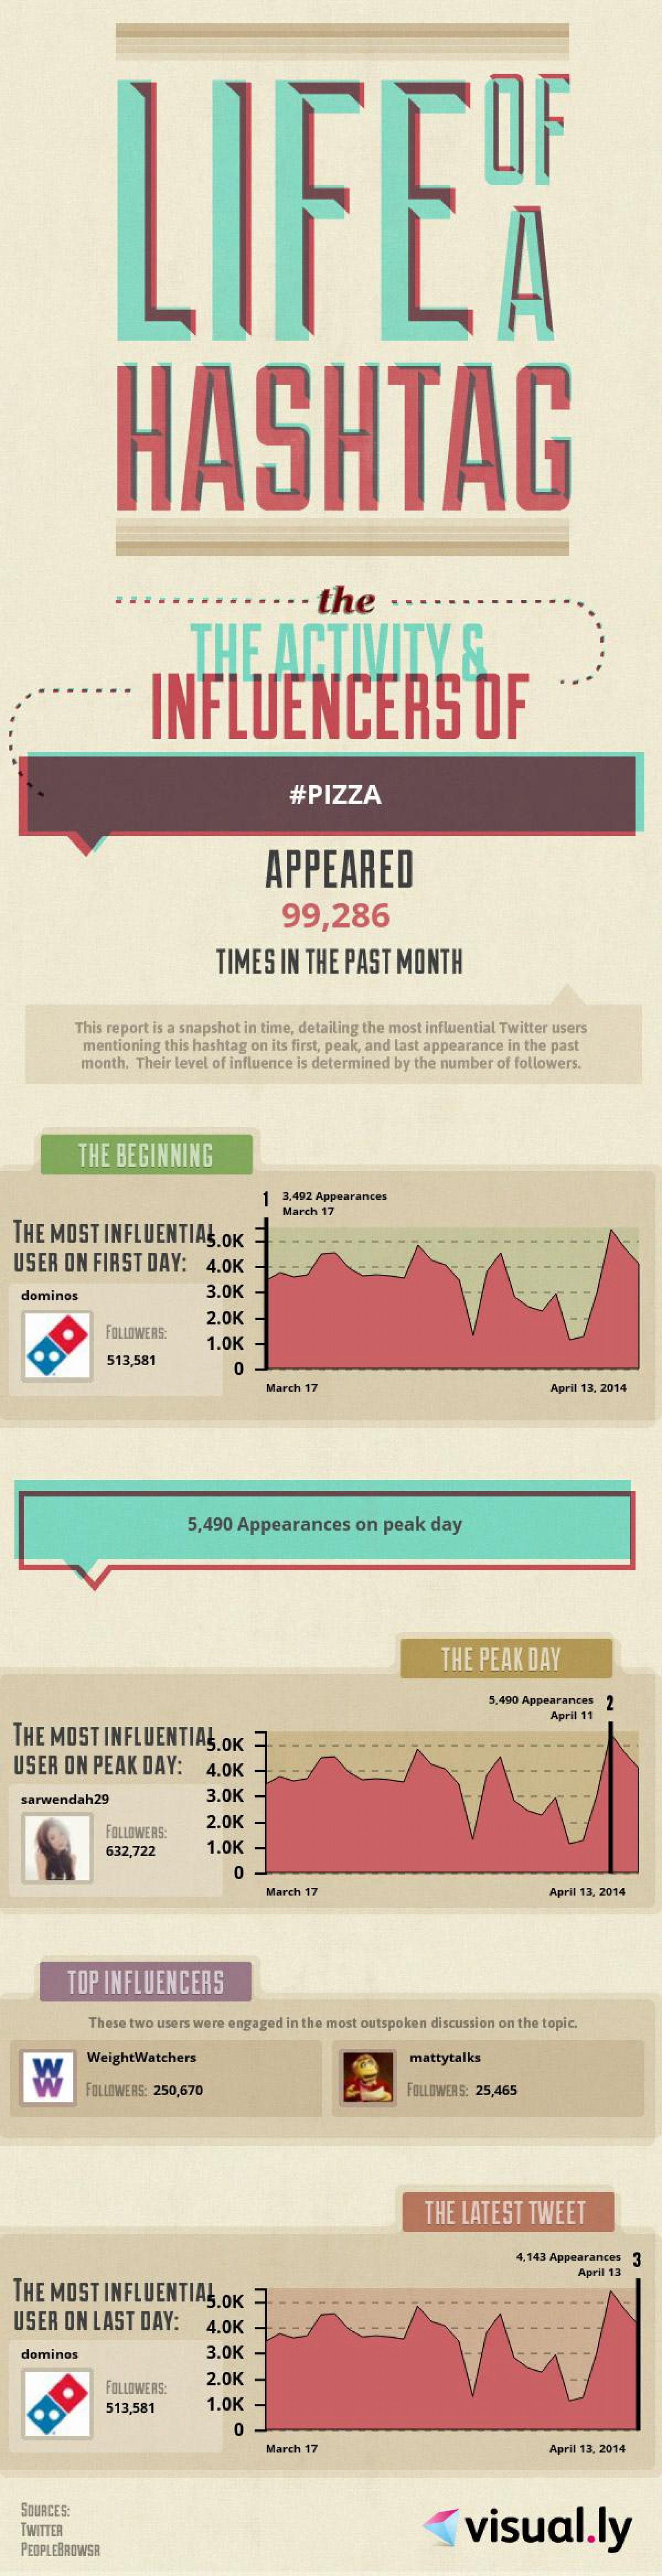 The life of #pizza on Twitter Infographic